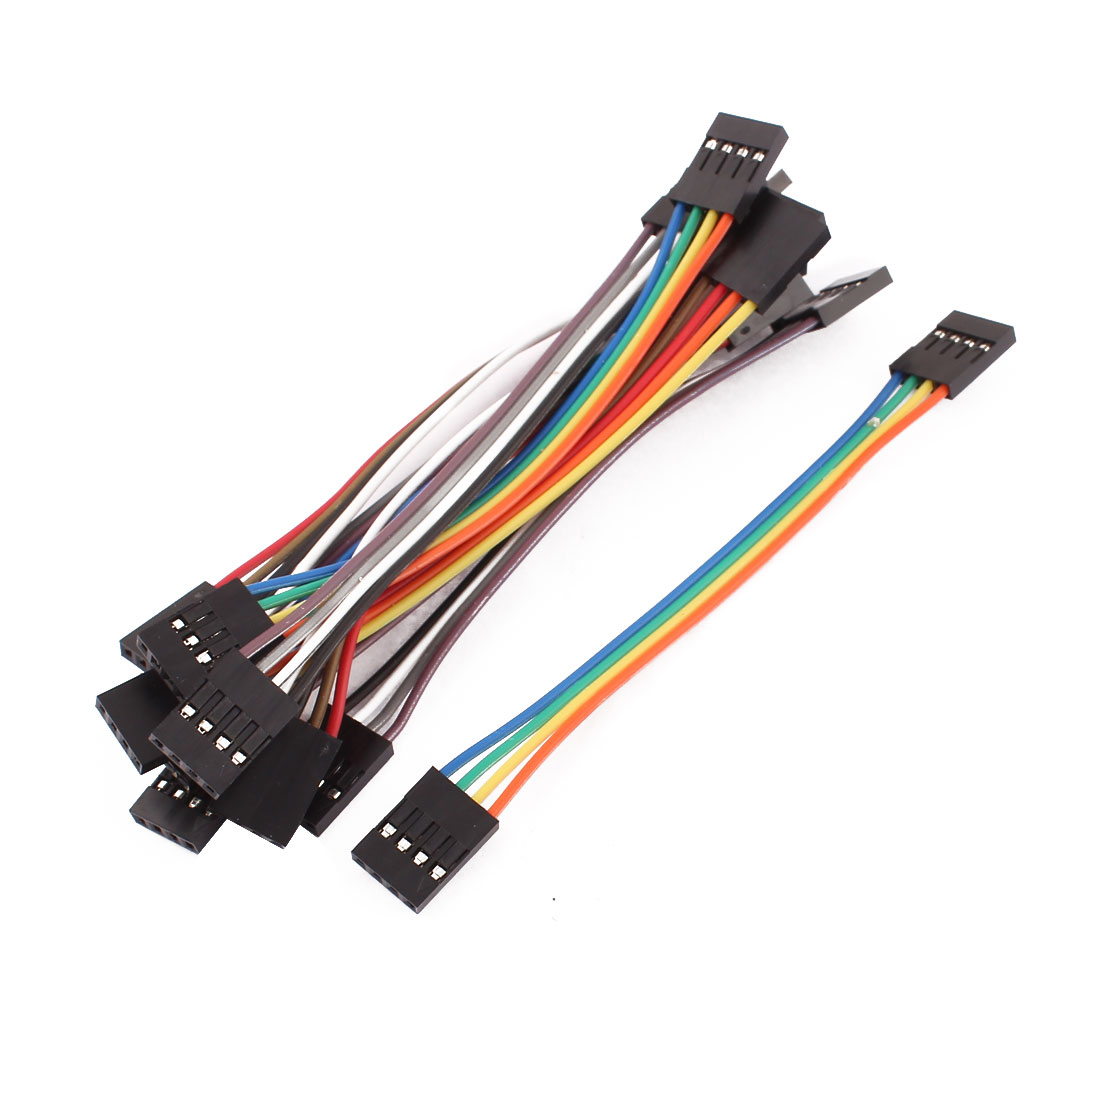 10 Pcs Female to Female 4P Jumper Wire Ribbon Cable Pi Pic Breadboard DIY 10cm Long